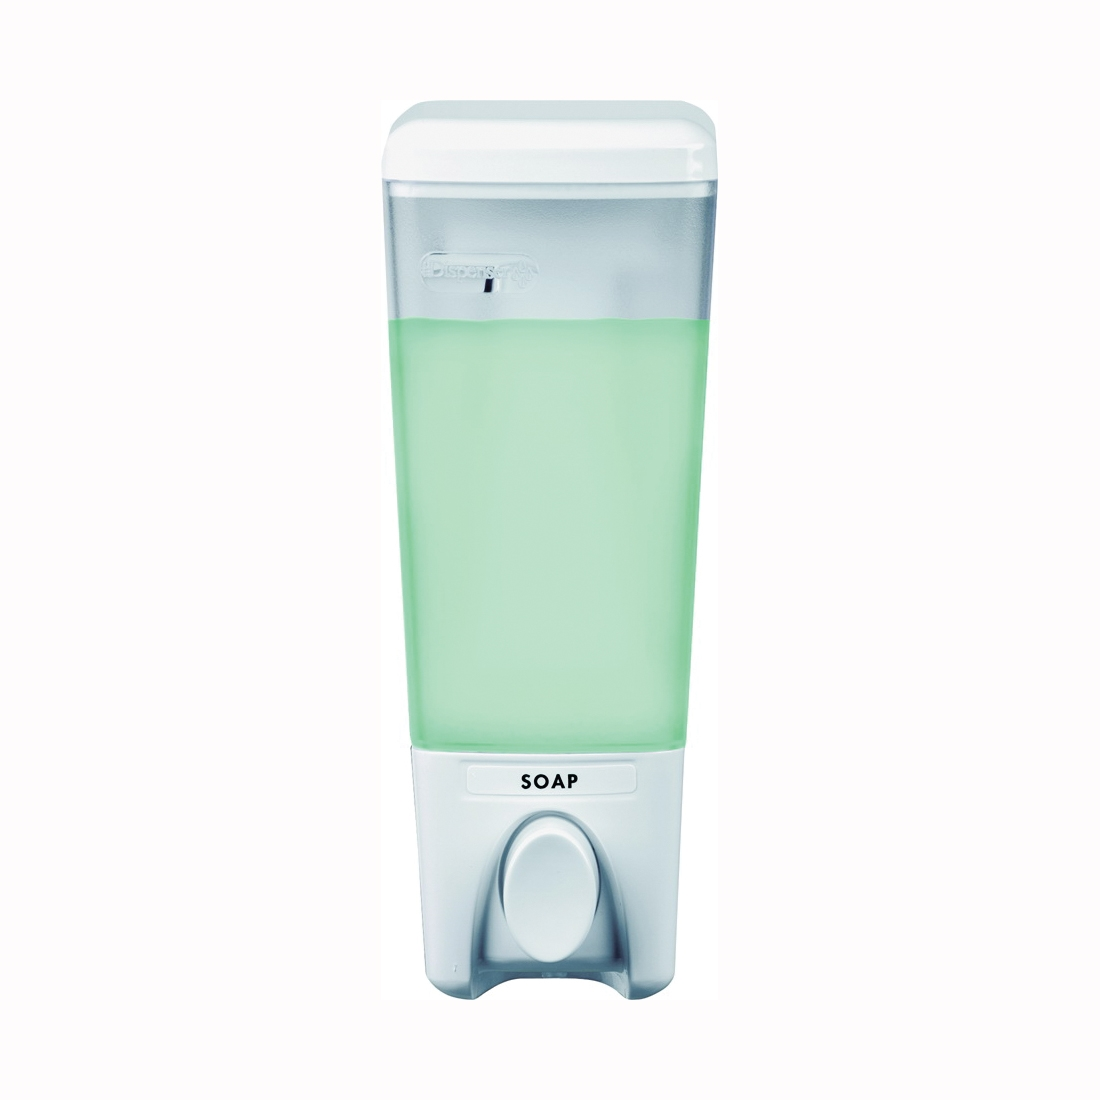 Picture of Better Living 72150 Soap Dispenser, 14.2 oz Capacity, ABS, White, Wall Mounting